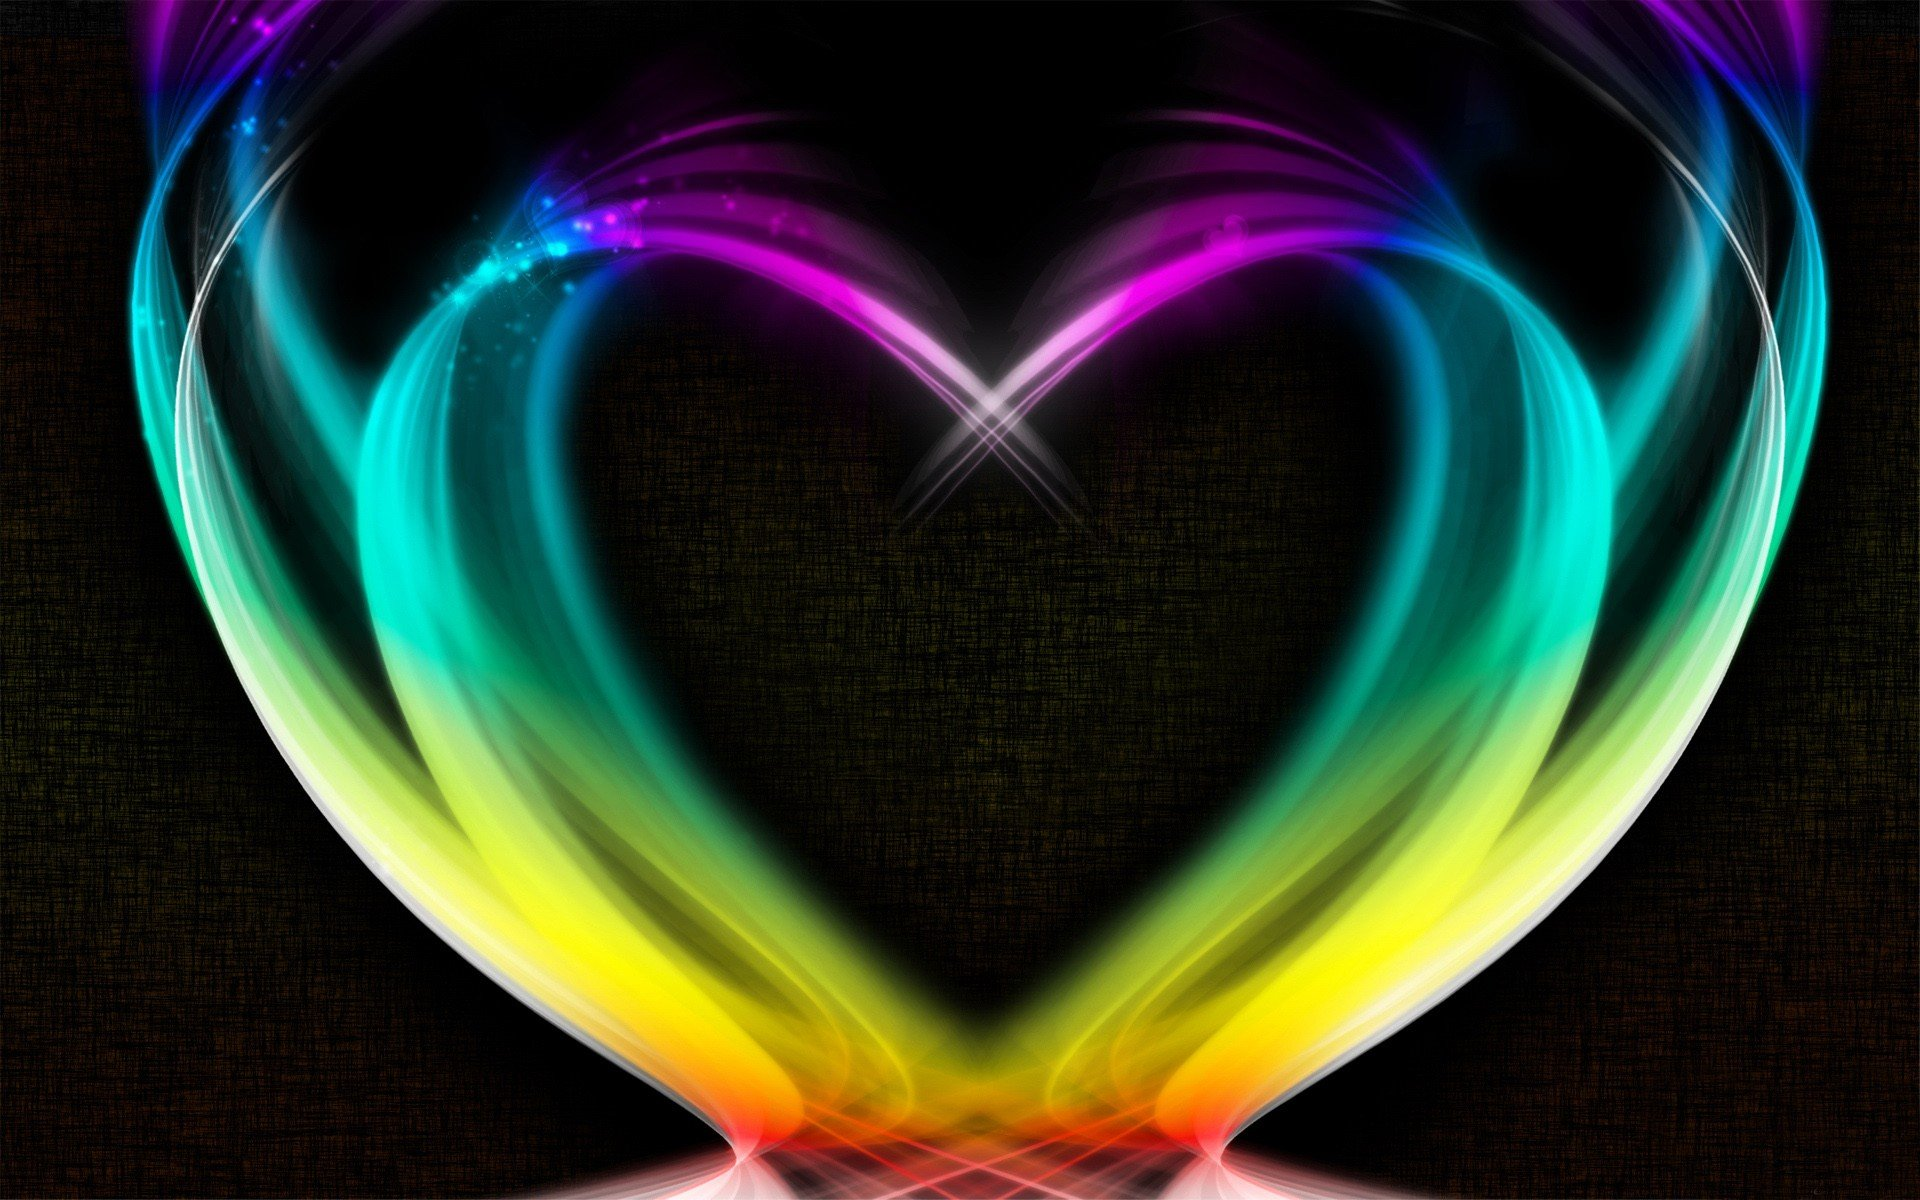 Download hd 1920x1200 Heart PC background ID:209349 for free